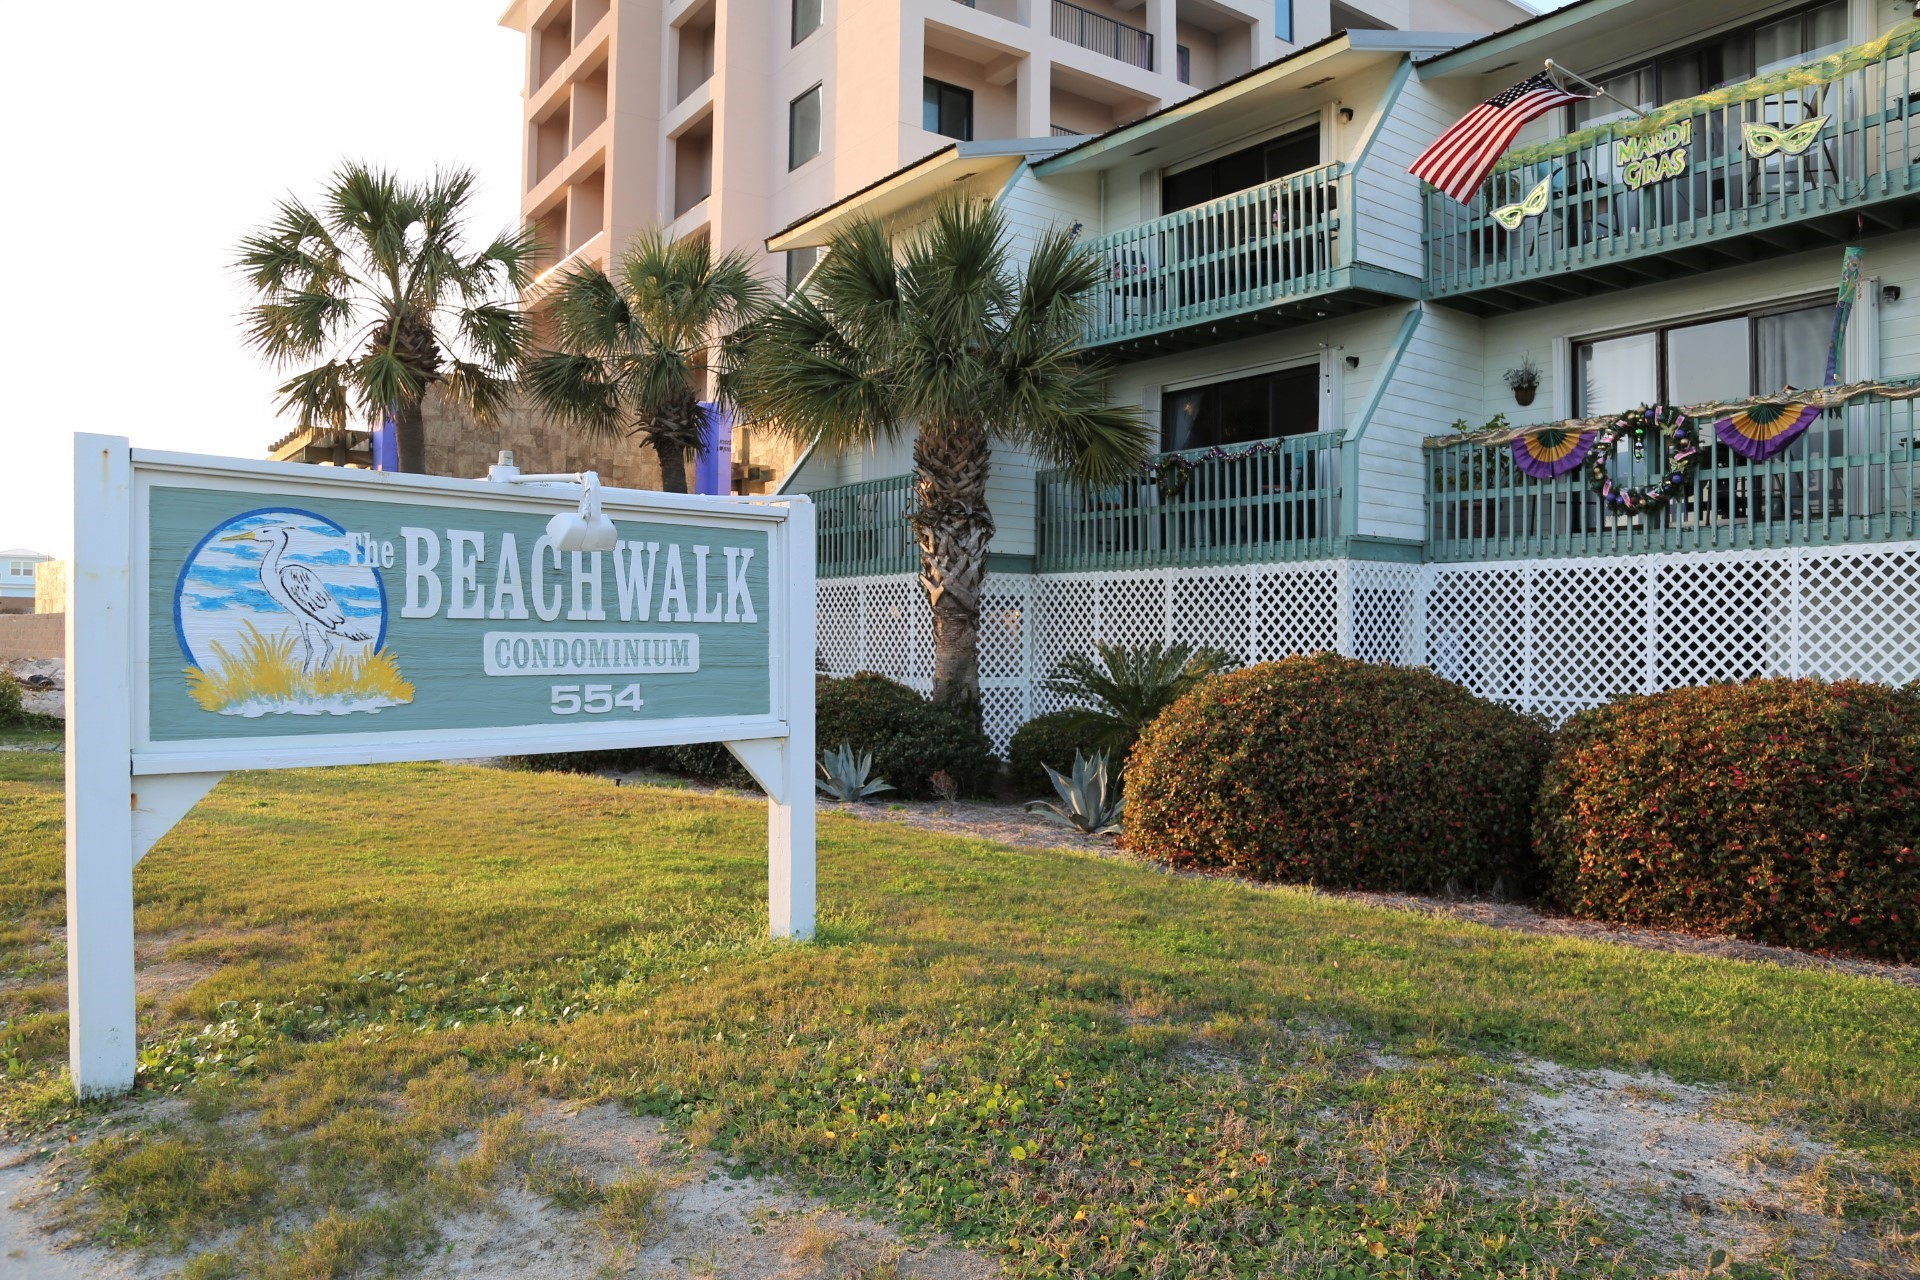 Beachwalk townhomes are in a prime location, approx 1 mile f